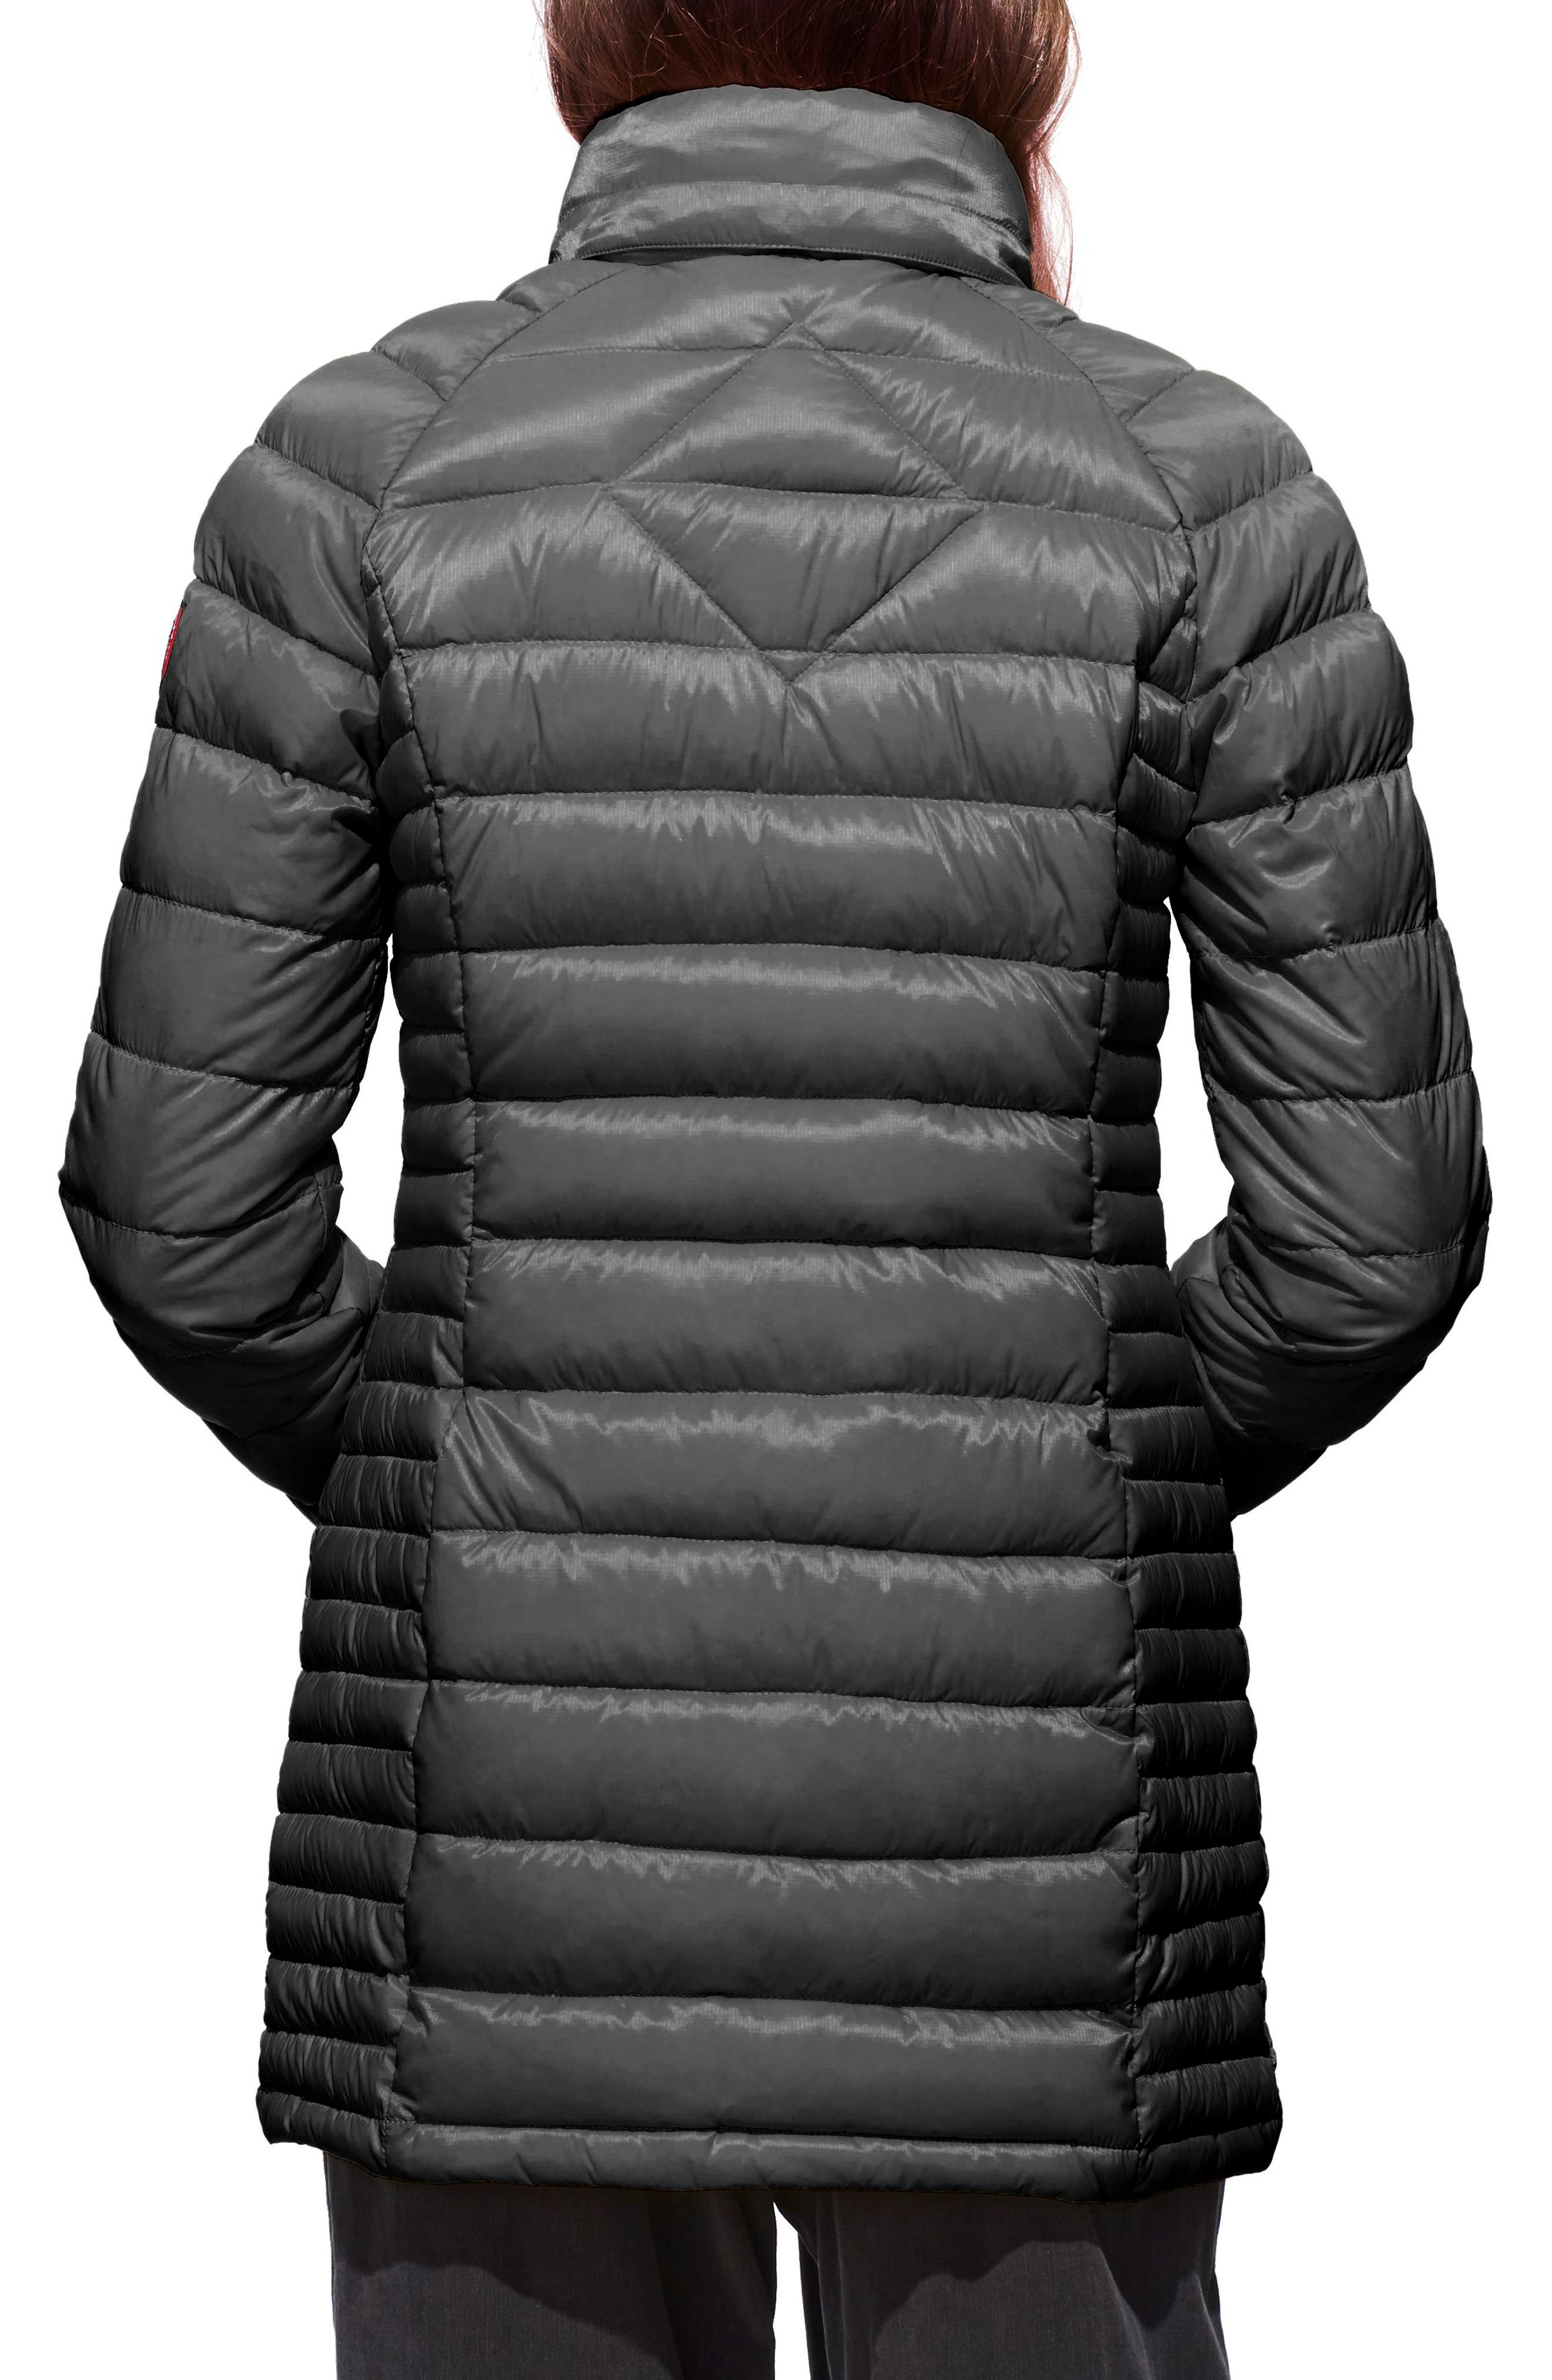 'Brookvale' Hooded Quilted Down Coat,                             Alternate thumbnail 2, color,                             Graphite/ Black